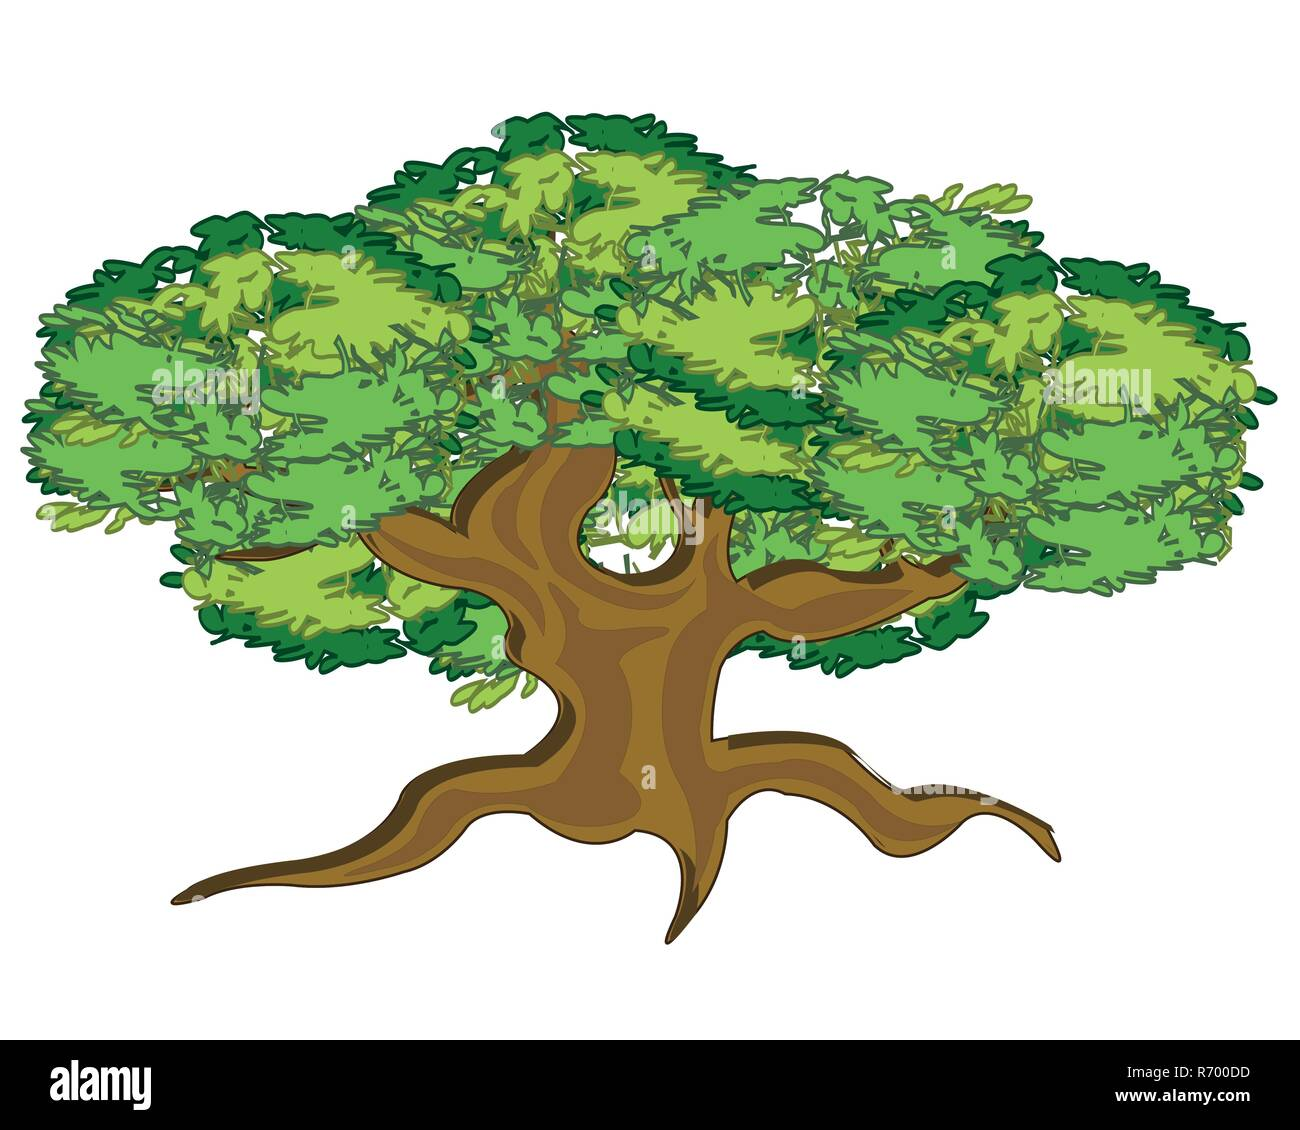 Tree Root Illustration High Resolution Stock Photography And Images Alamy A branch with green leaves. https www alamy com vector illustration big and curly tree summer image228037753 html